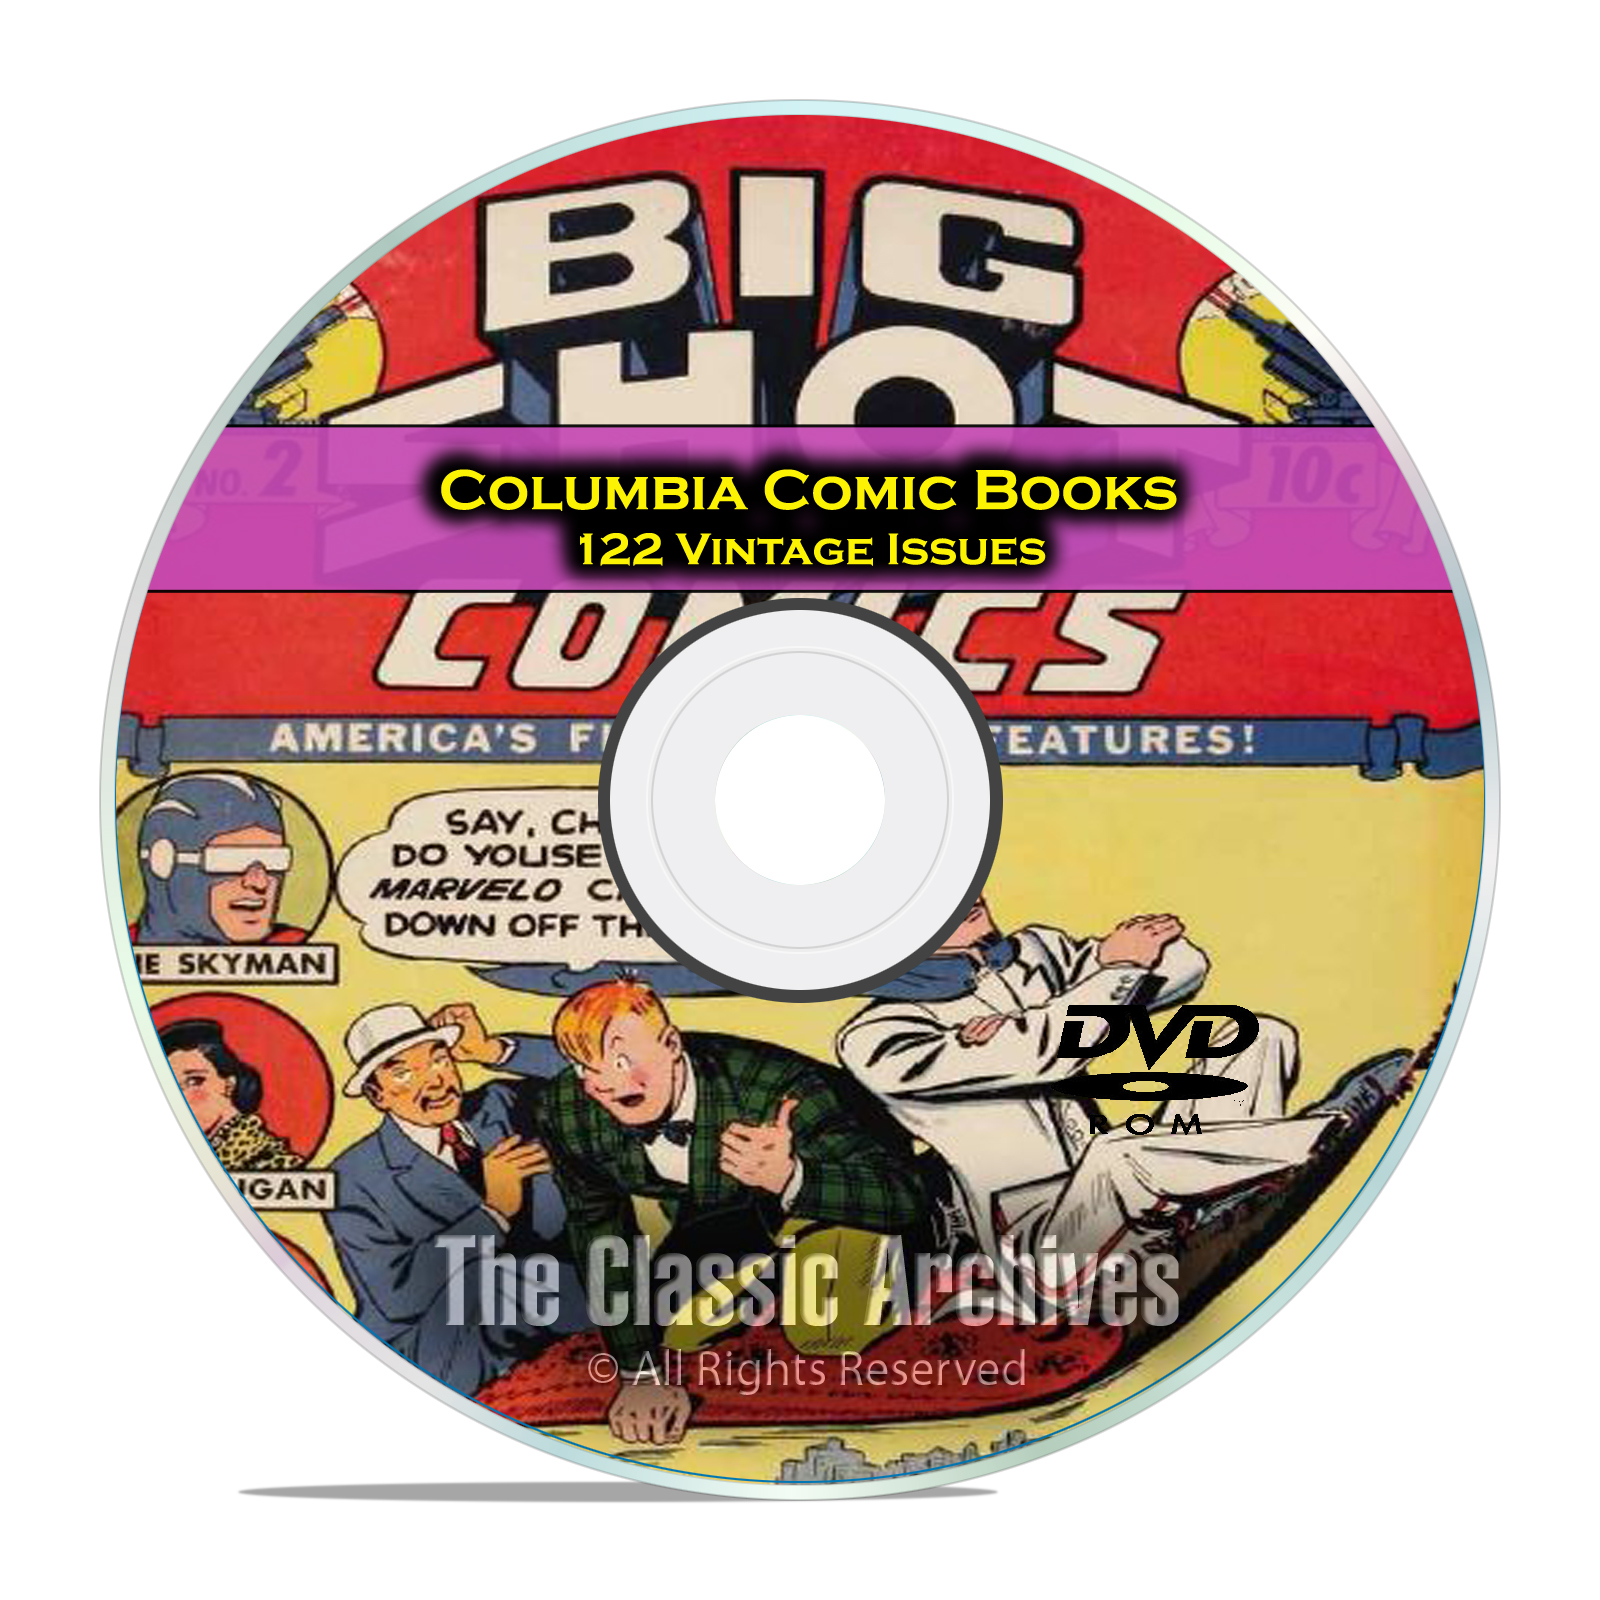 Columbia Comics, 122 Issues, Big Shot Comics, Sparky, Golden Age Comics DVD